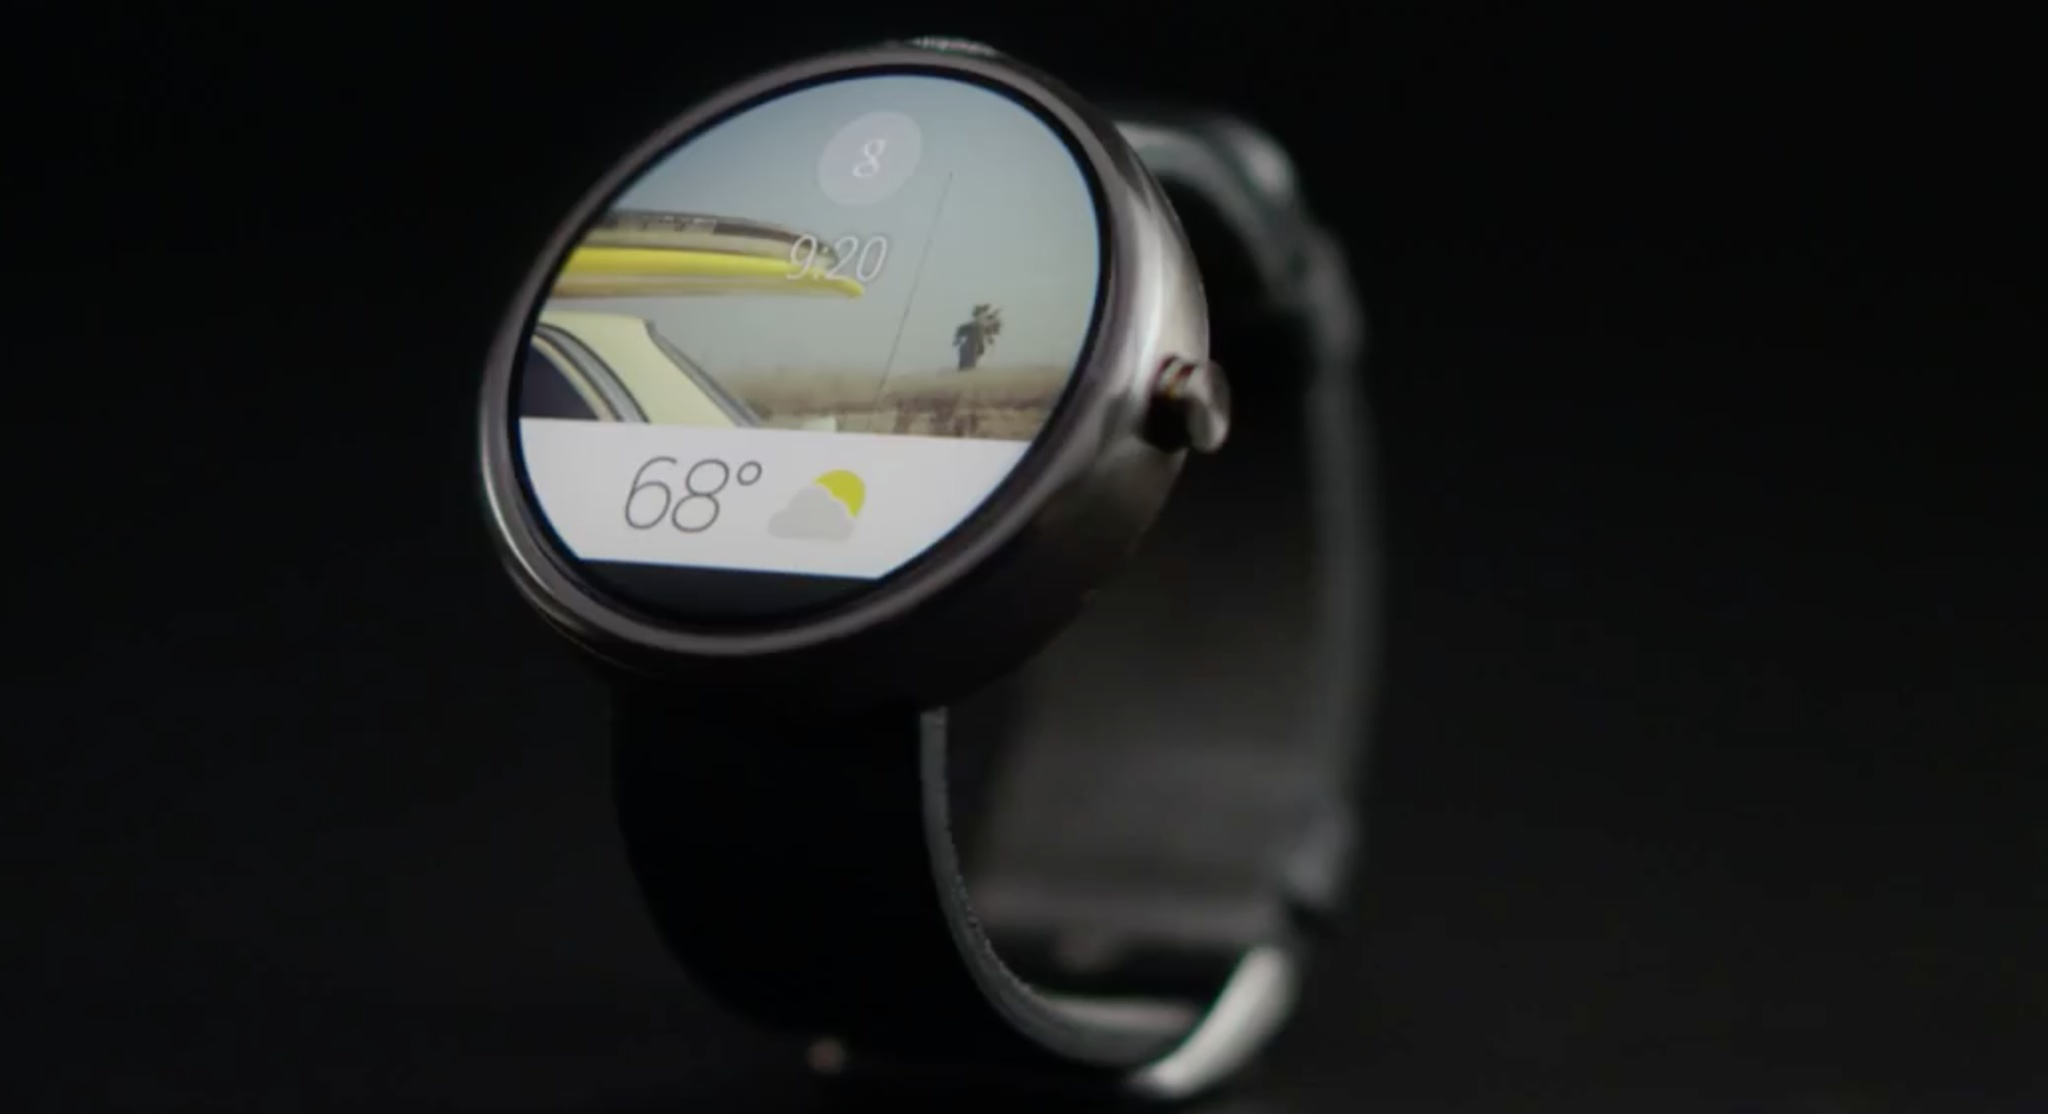 http://www.indogamers.com/system/upload/media/pictures/5329058c271331395197324google-android-wear-smartwatch-001.jpg